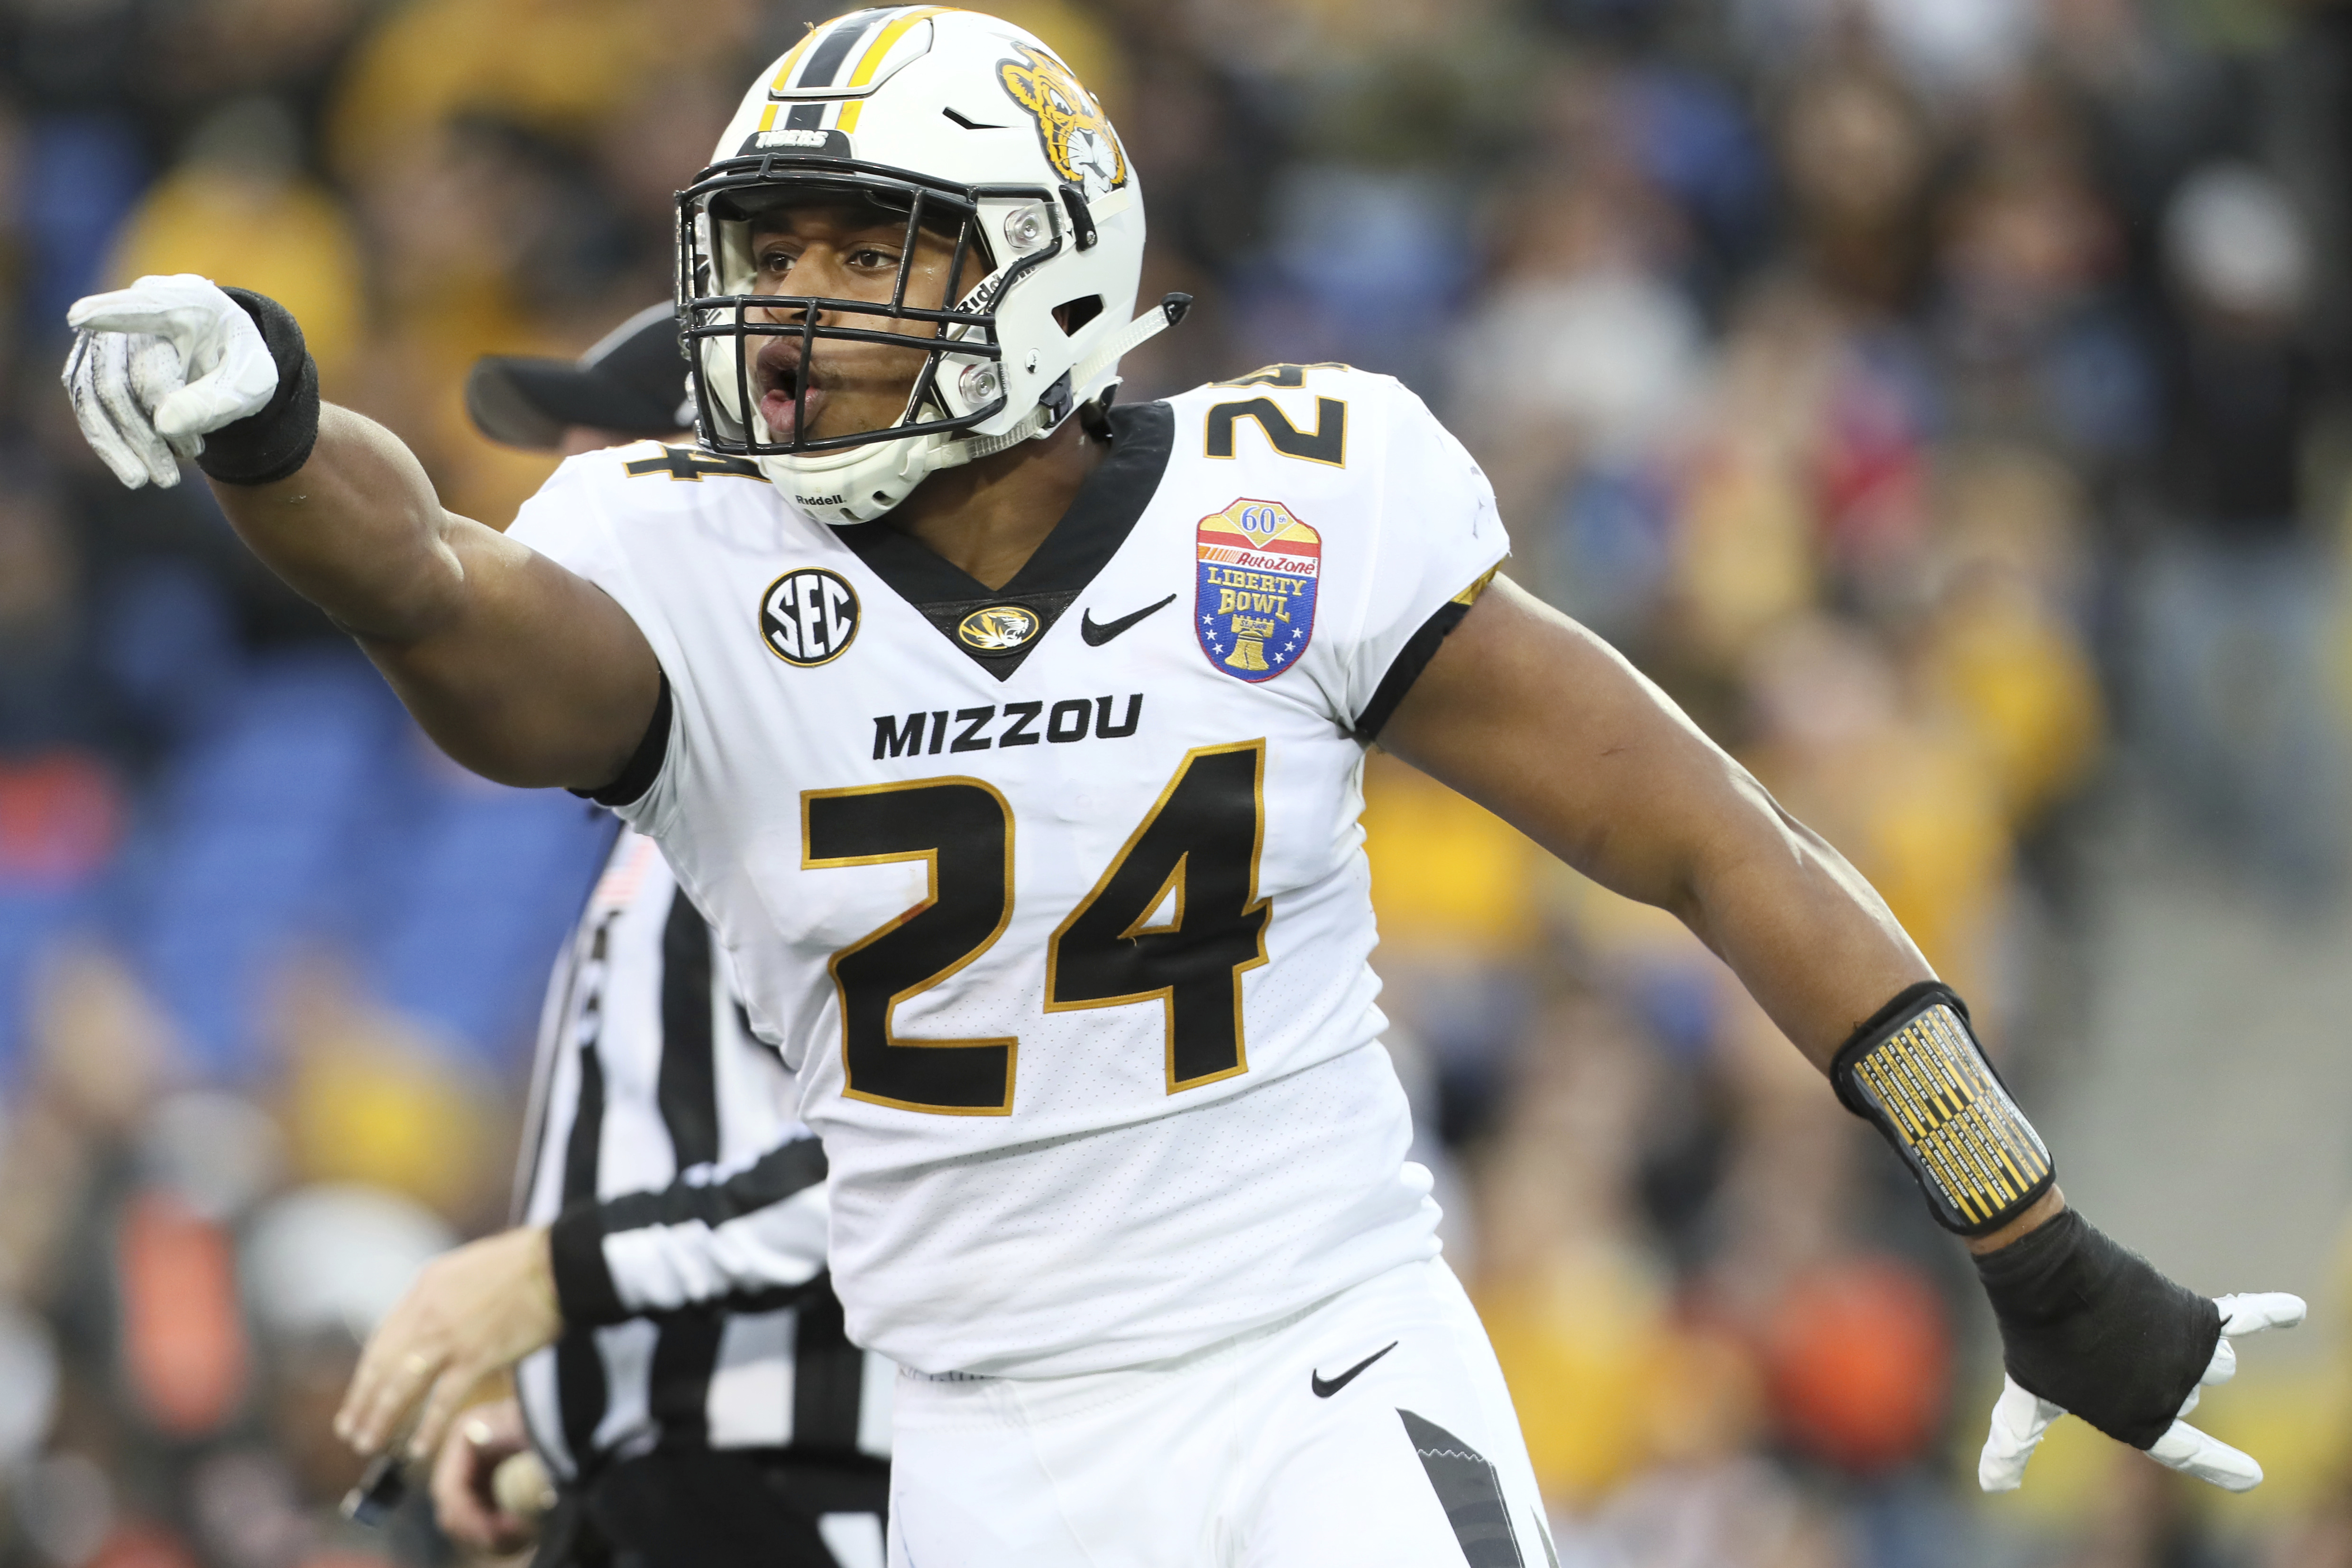 brand new b76a5 8a2c1 Here are the 10 Patriots undrafted free agents - The Boston ...